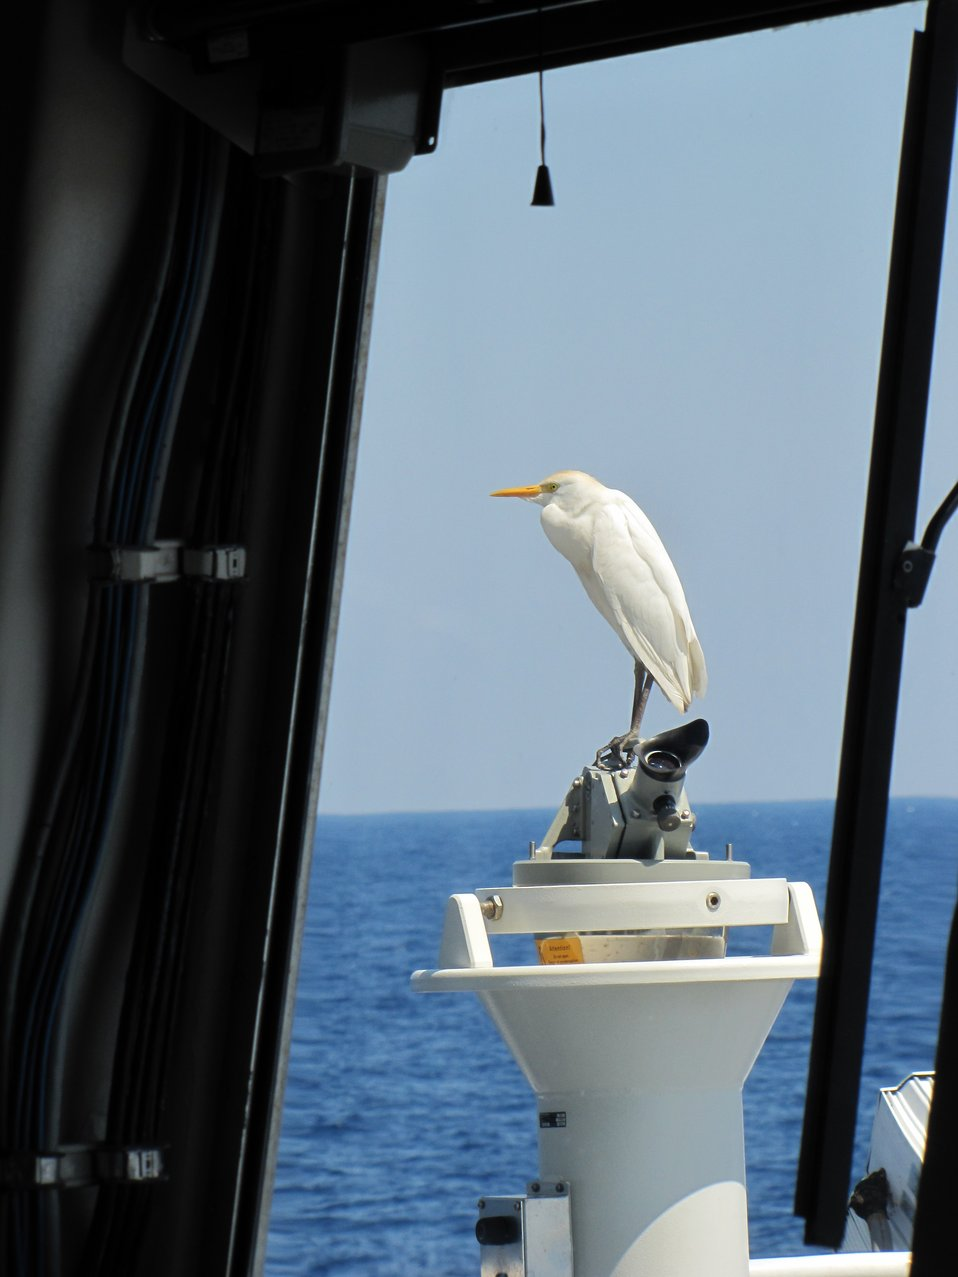 Cattle egret blown lost offshore perched on compass stand alidade